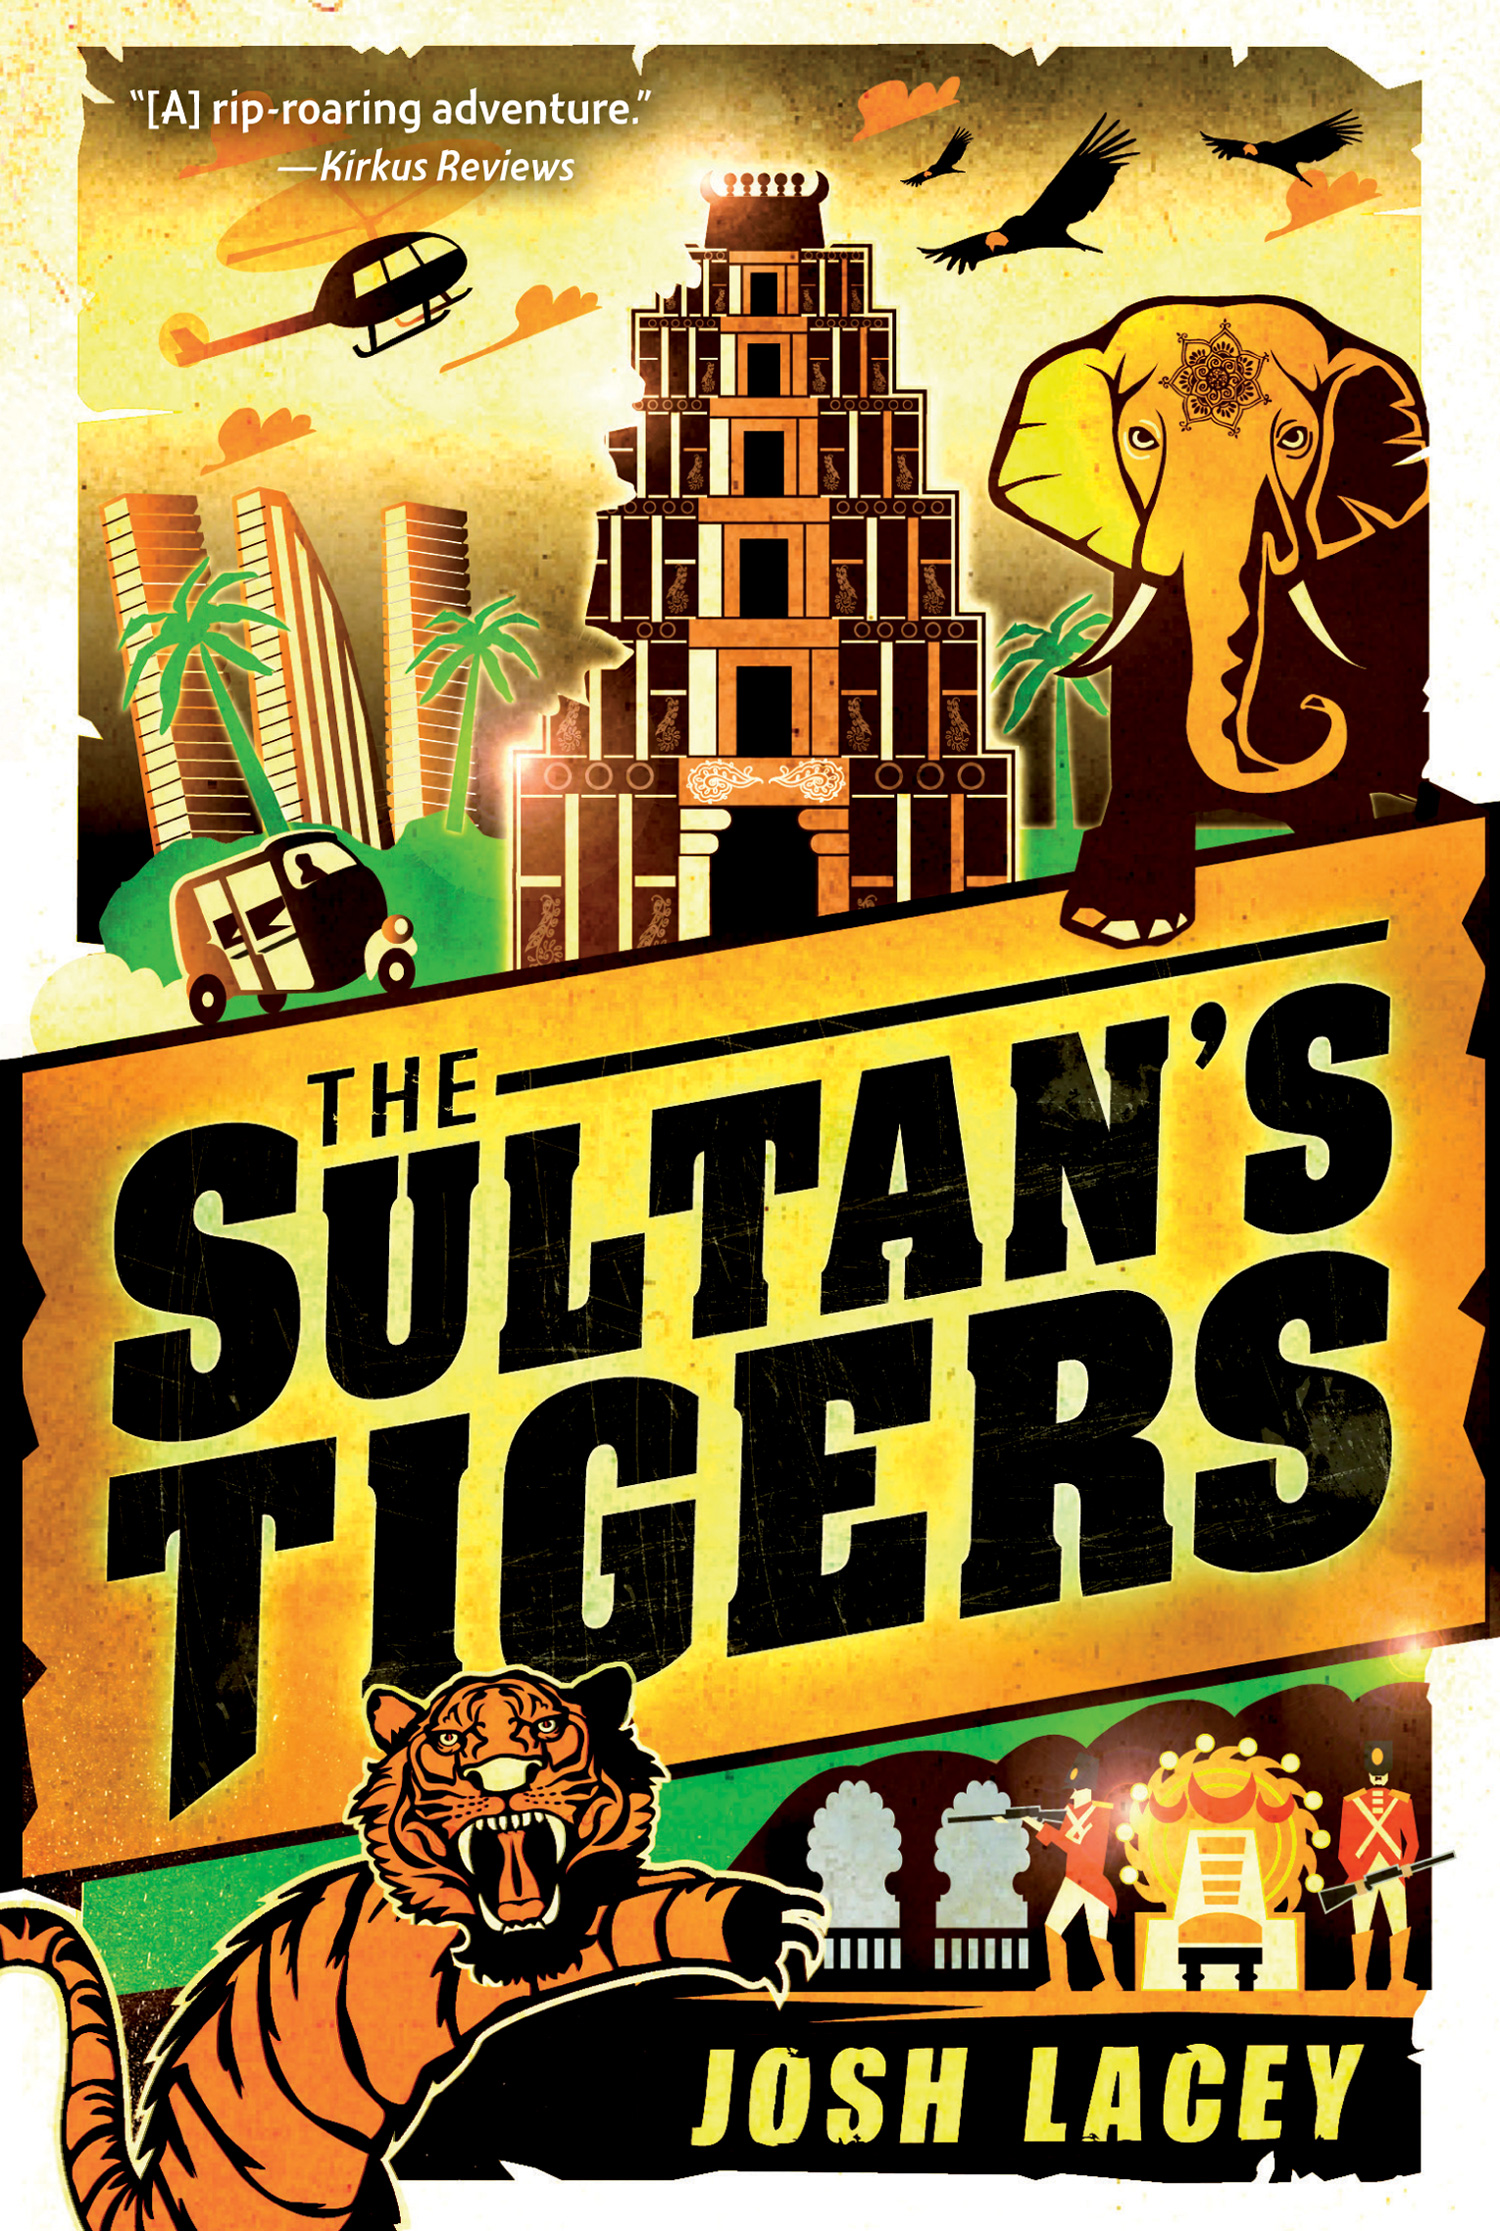 The Sultan's Tigers-9780544336292